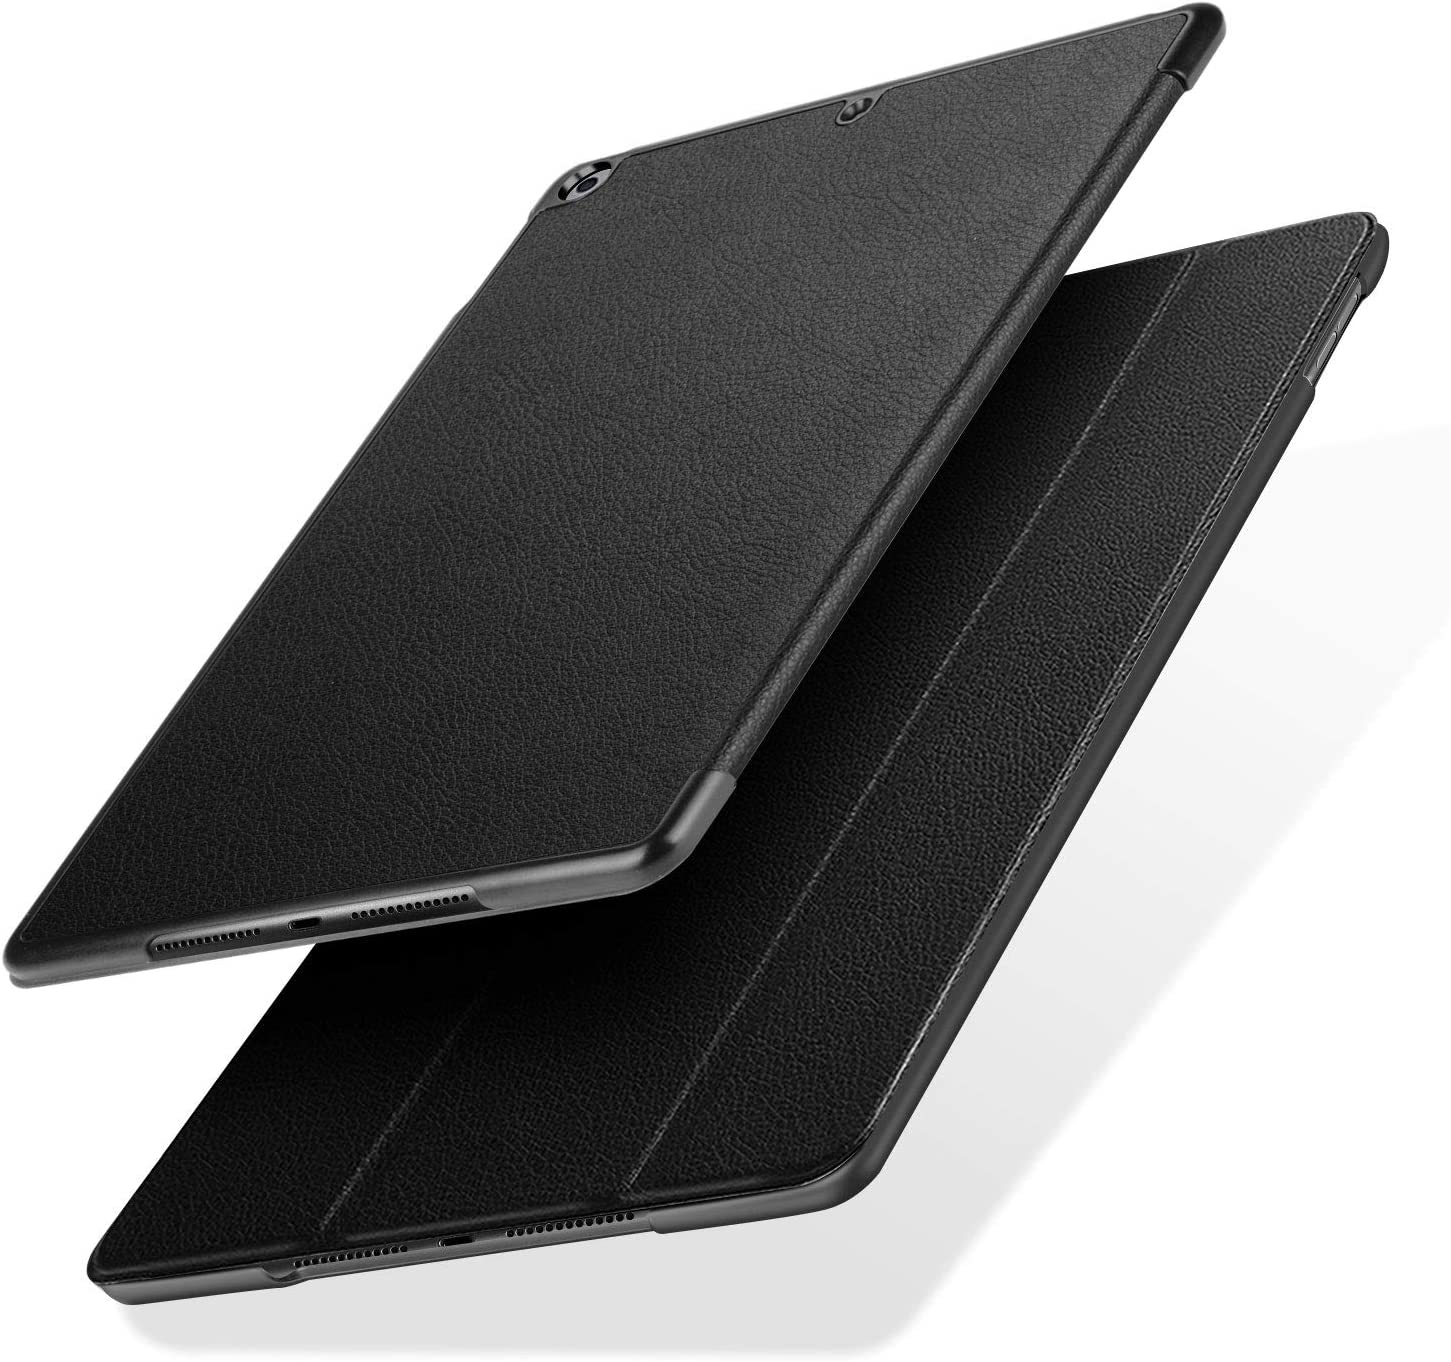 J&D Case Compatible for iPad 10.2 inch 2019/2020 Case, Protective Shock Resistant Rugged Case for iPad 10.2 inch (Release in 2019/2020) Case, with Auto Sleep/Wake Feature - Black